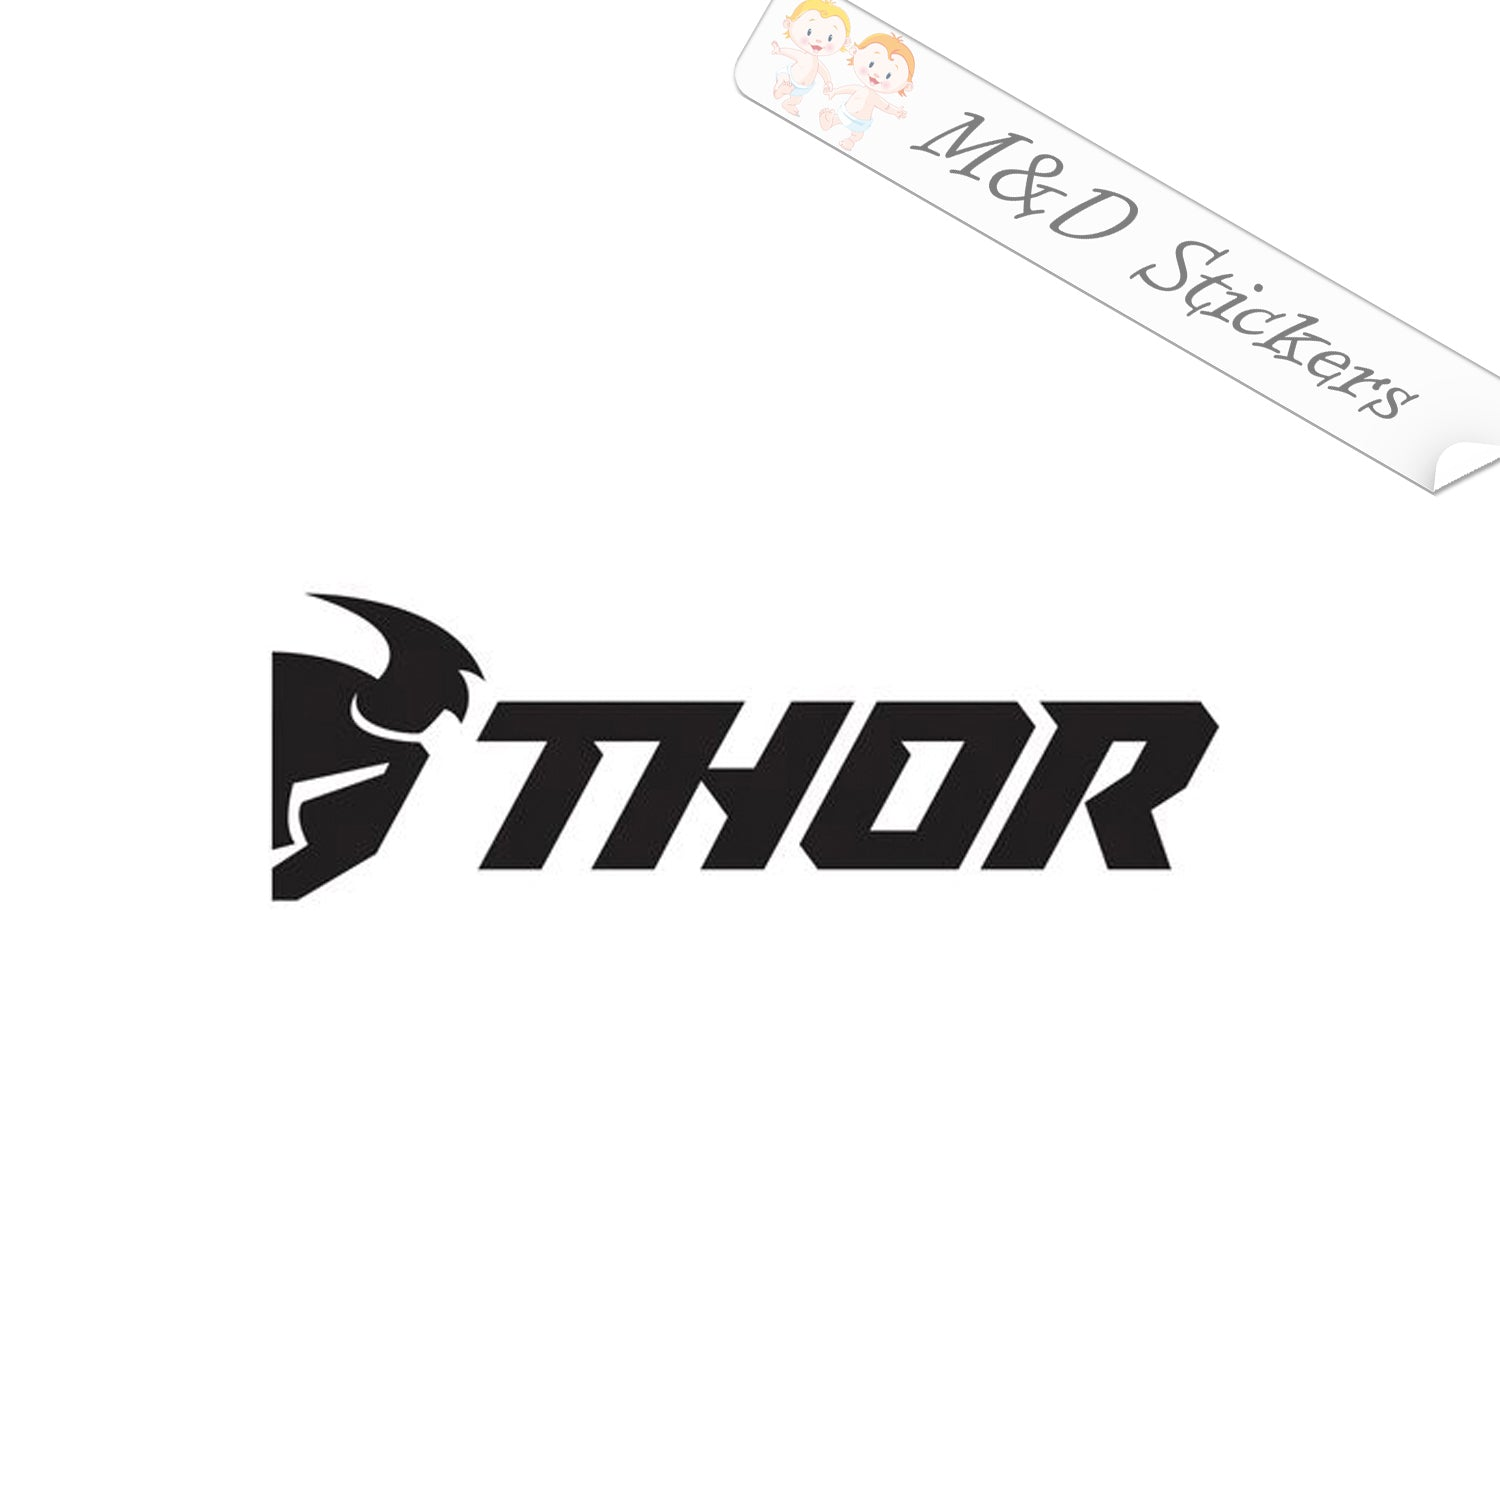 32x Thor Logo Vinyl Decal Sticker Different colors & size for  Cars/Bikes/Windows